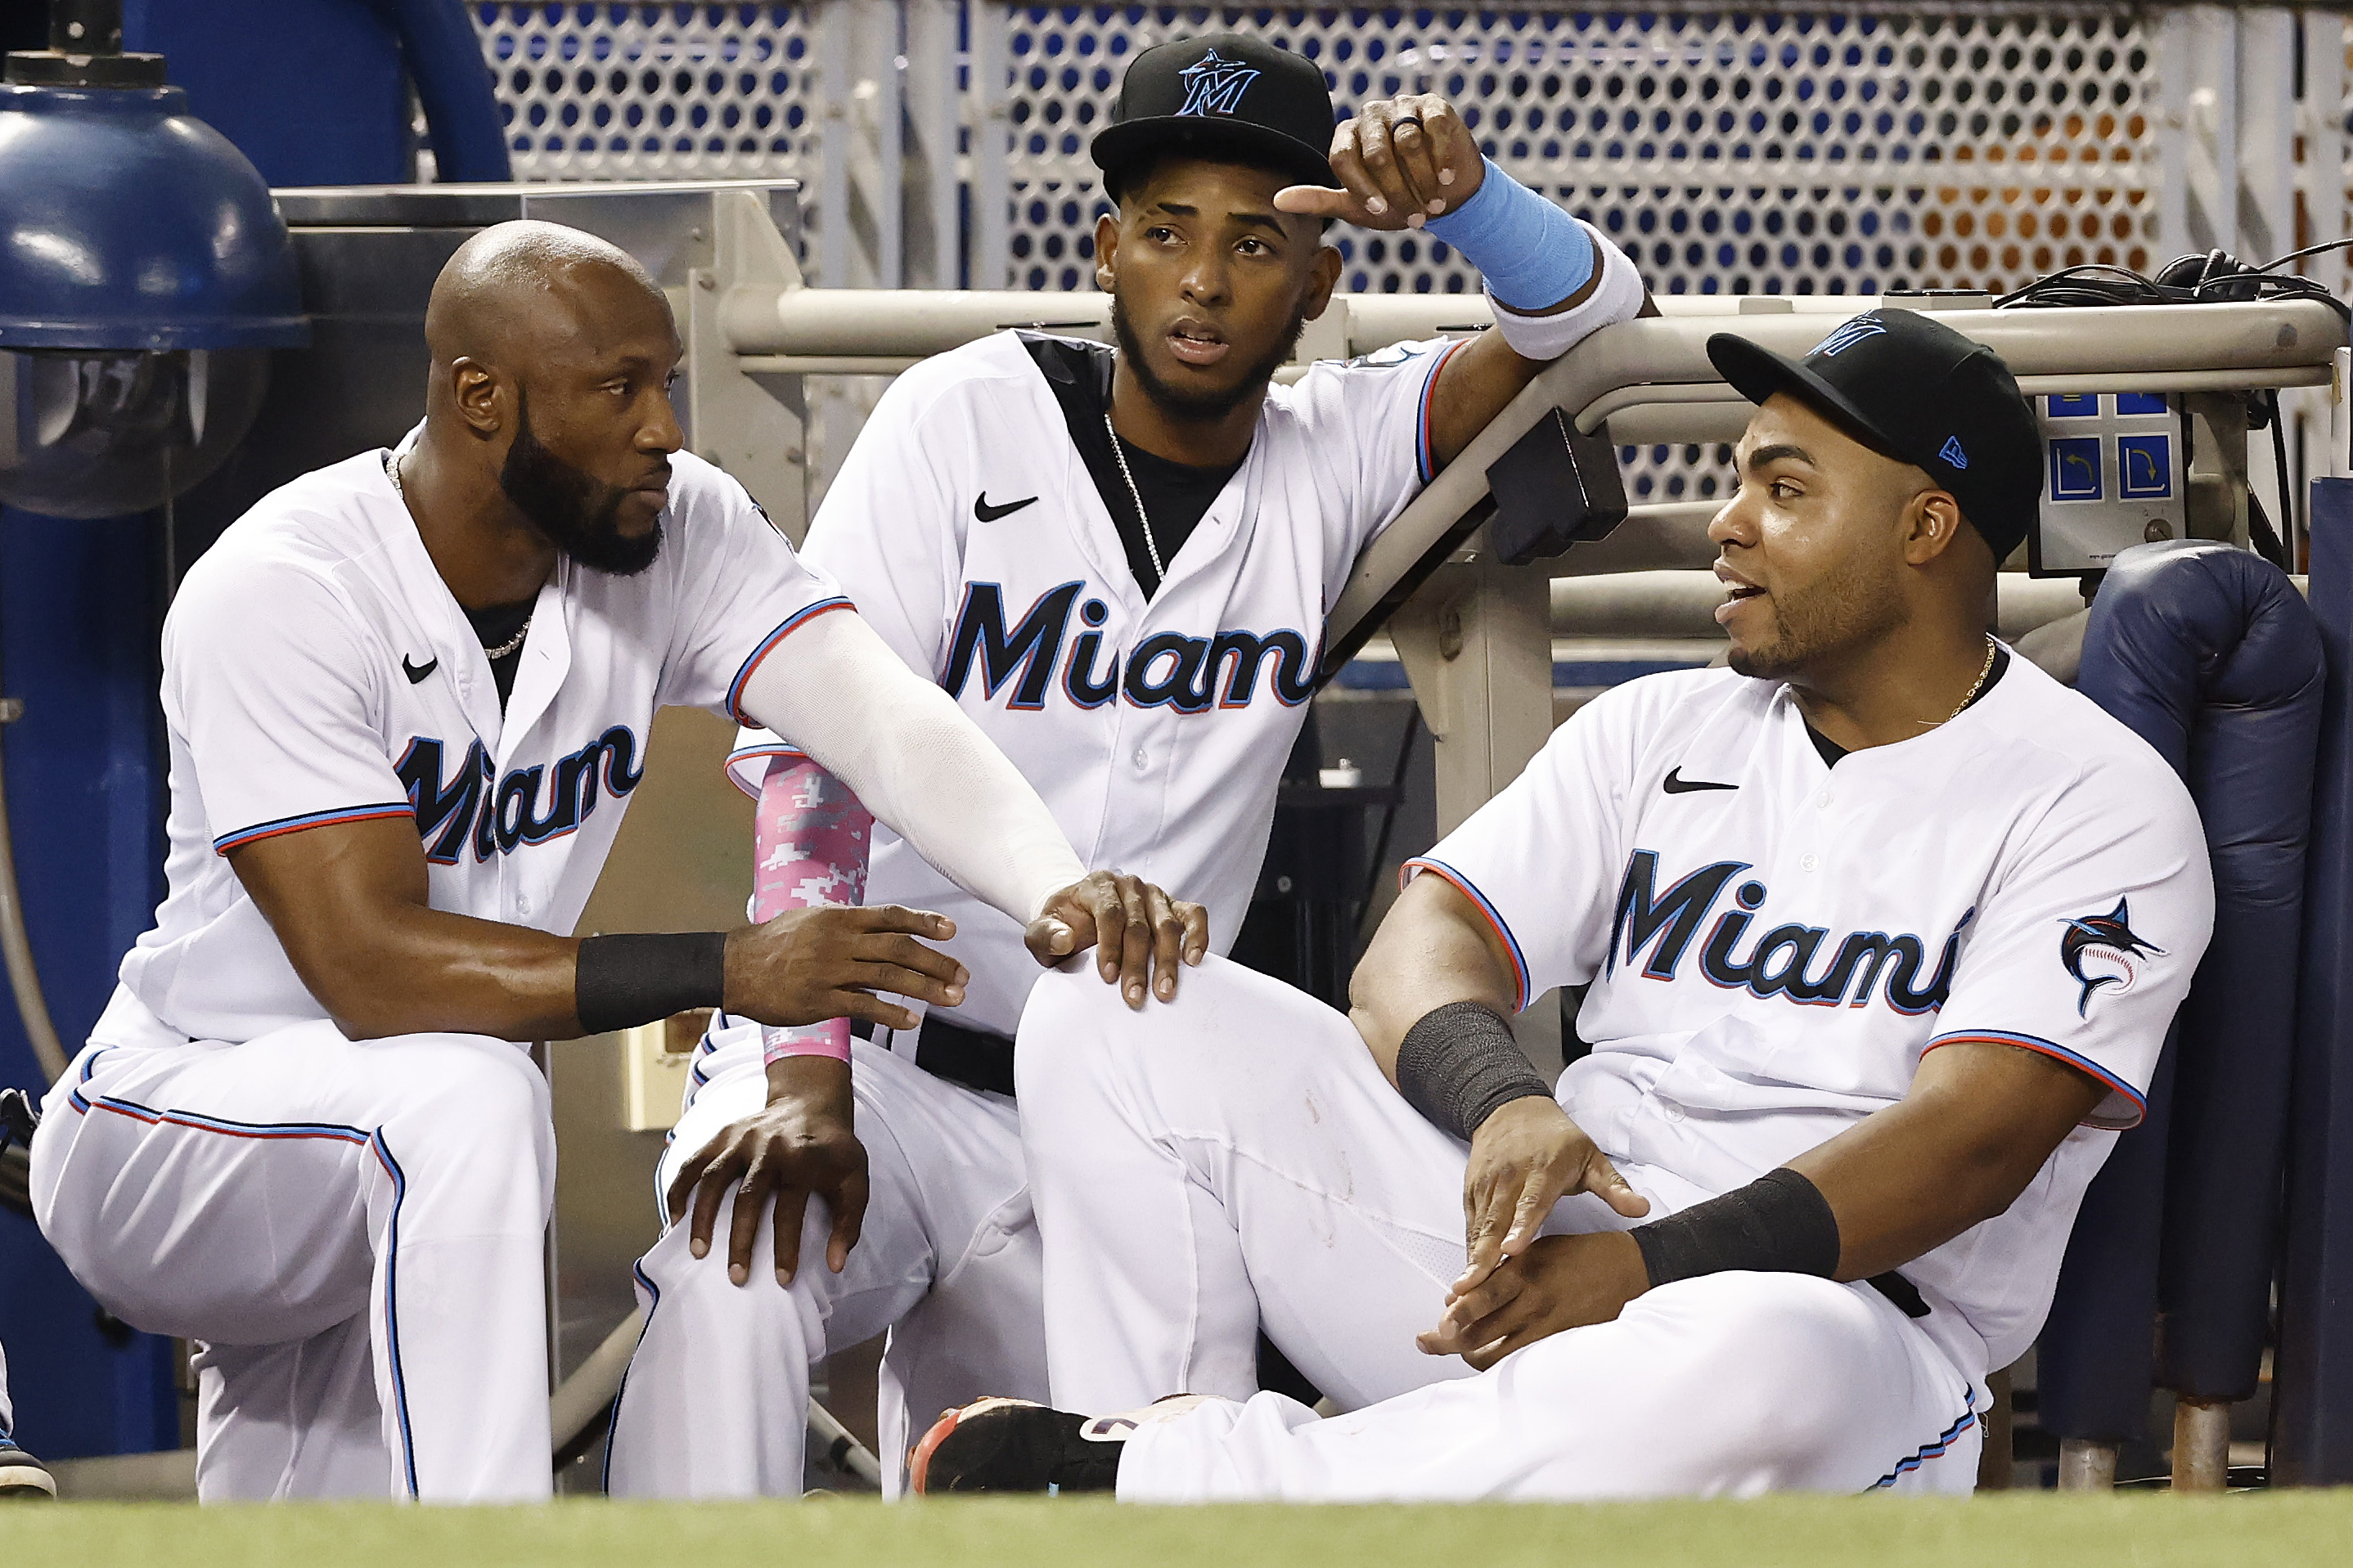 Lewin Diaz #68 and Jesus Aguilar #24 of the Miami Marlins look on against the Toronto Blue Jays at loanDepot park